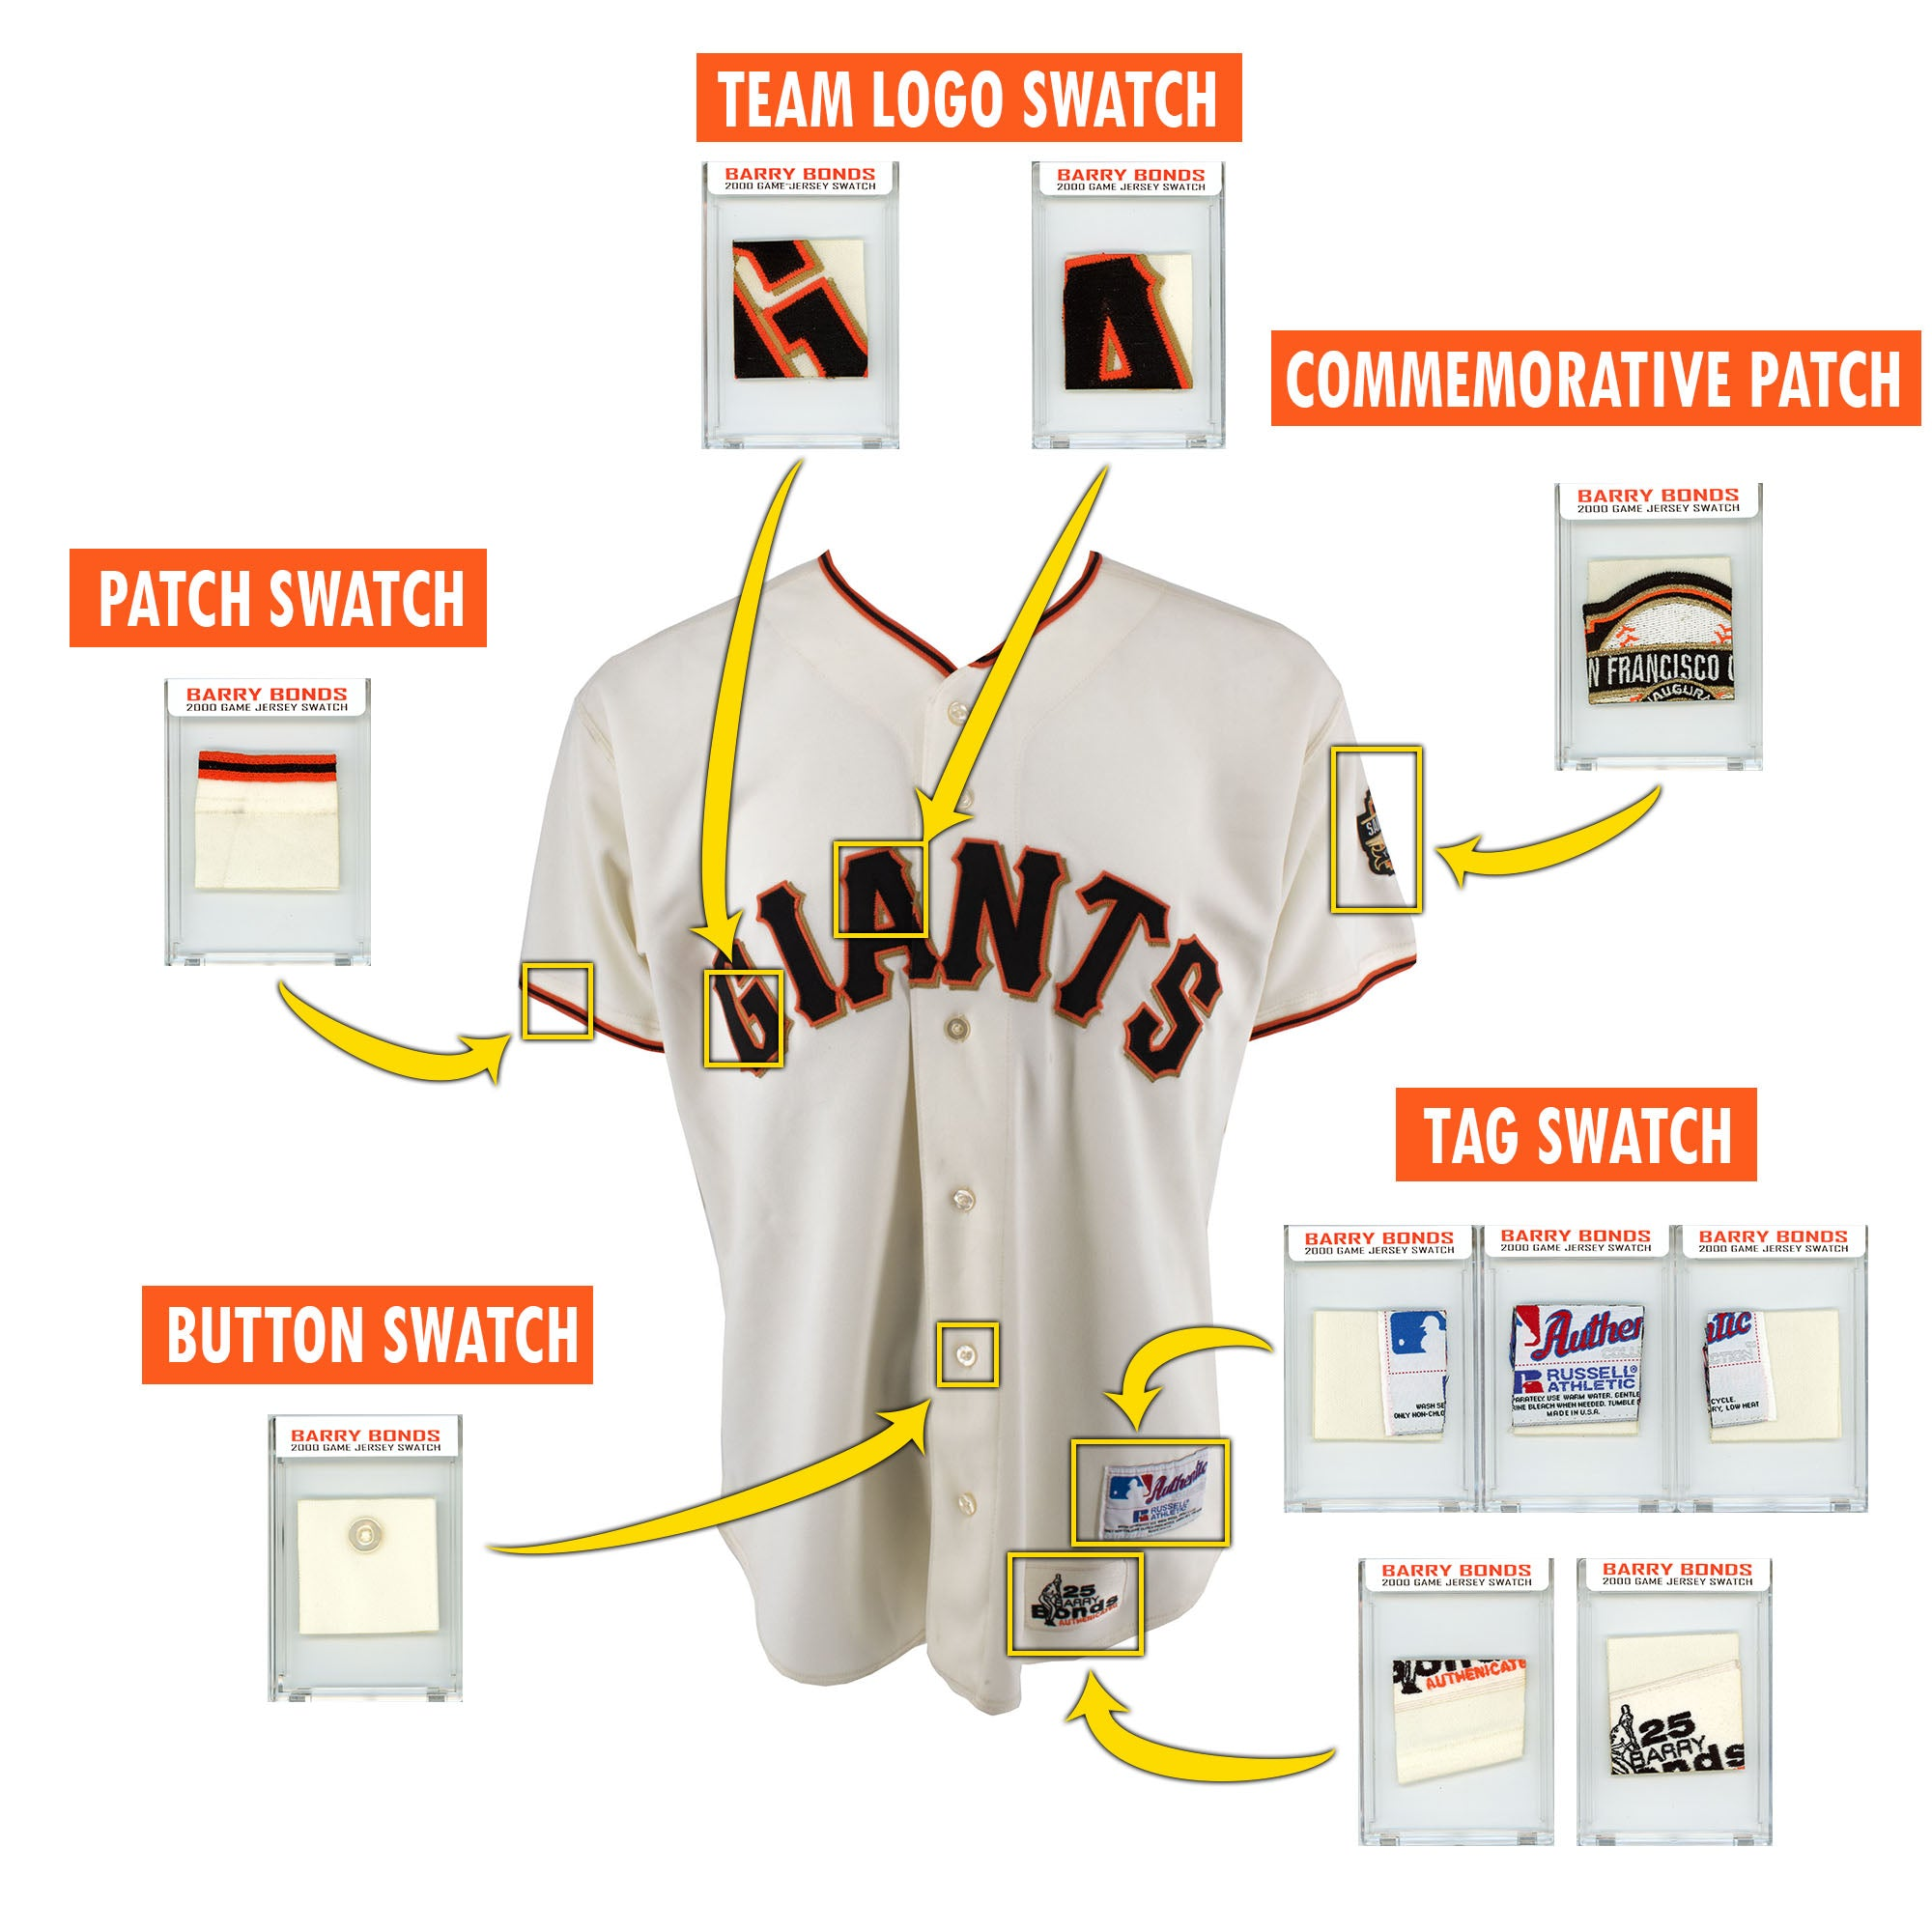 BARRY BONDS 2000 SF GIANTS GAME WORN JERSEY MYSTERY SEALED SWATCH BOX!